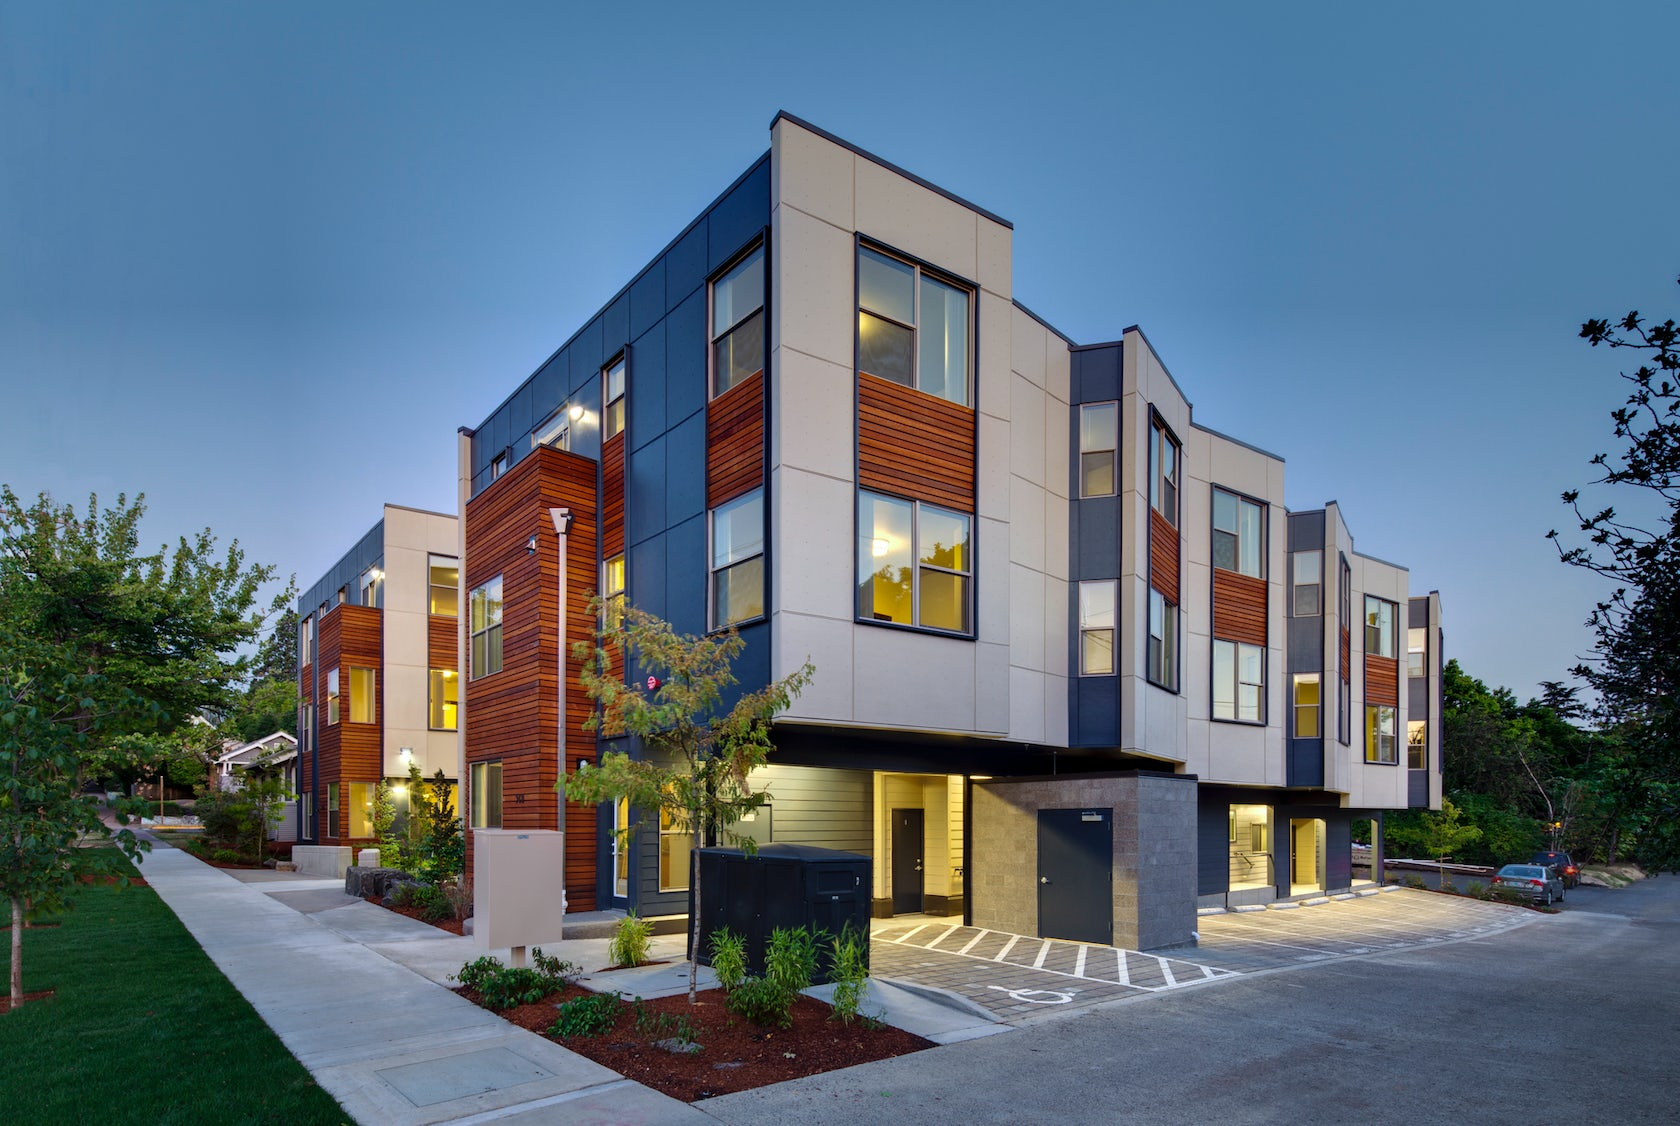 Solstice student housing architizer for Residential architects eugene oregon